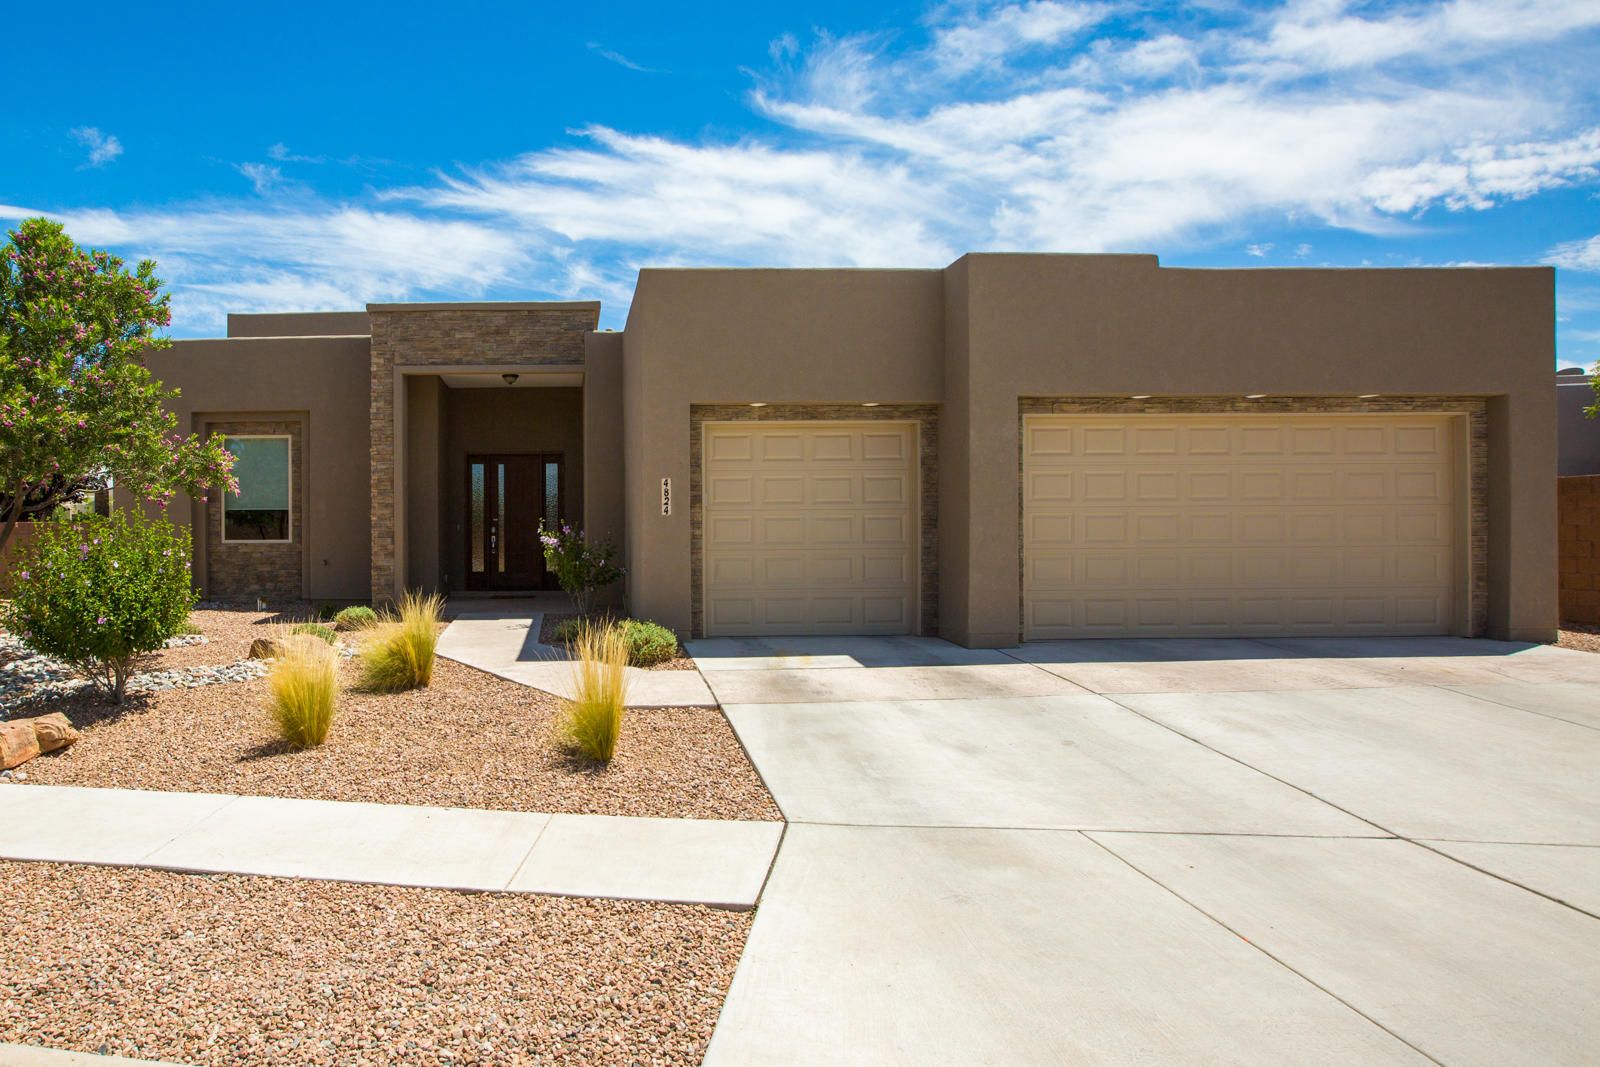 4824 CAMINO VALLE Trail NW Property Photo - Albuquerque, NM real estate listing